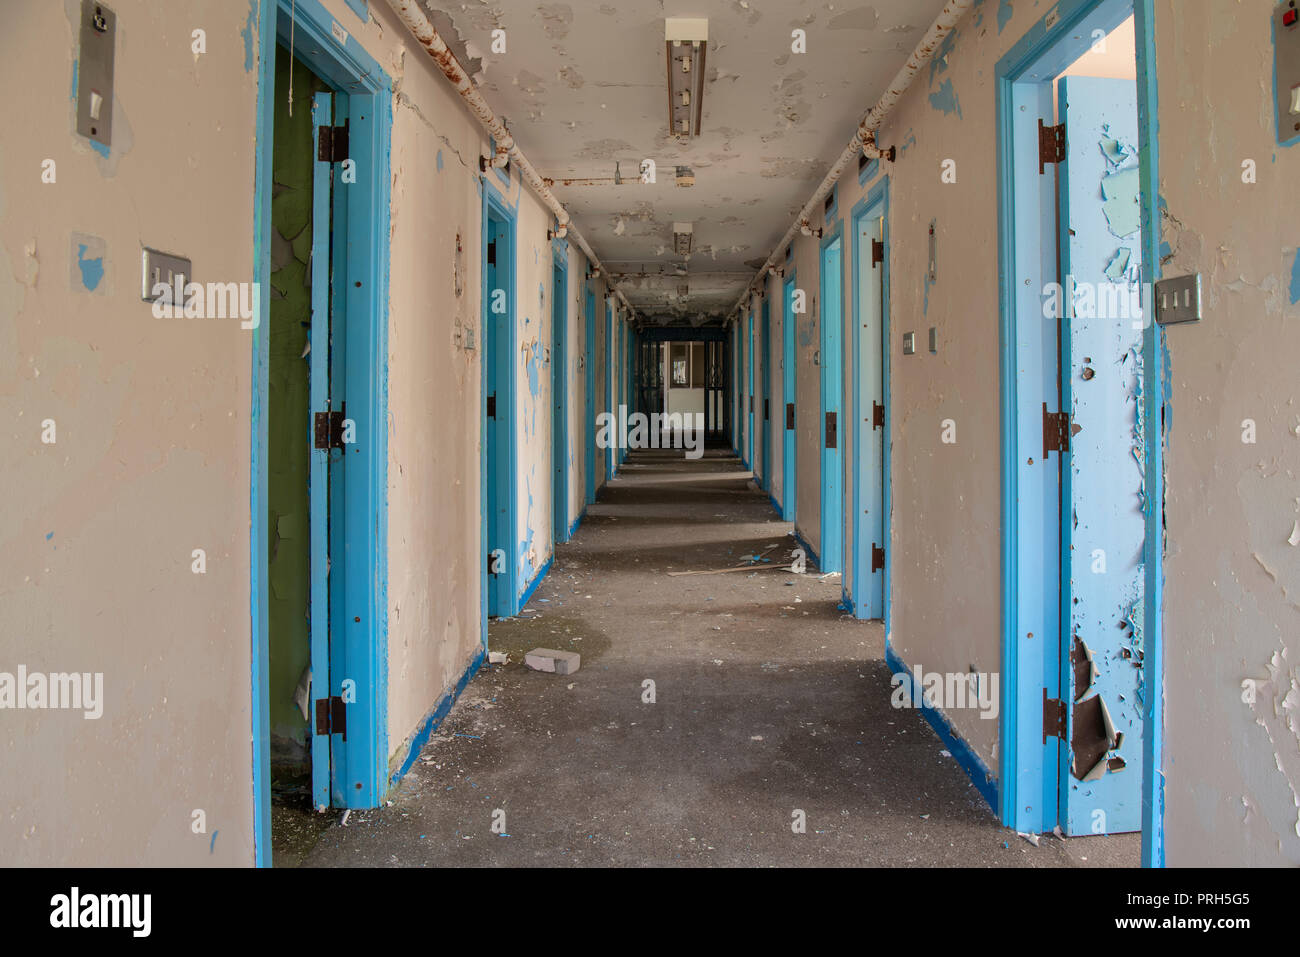 Corridor of prison cell doors inside an abandoned prison. - Stock Image